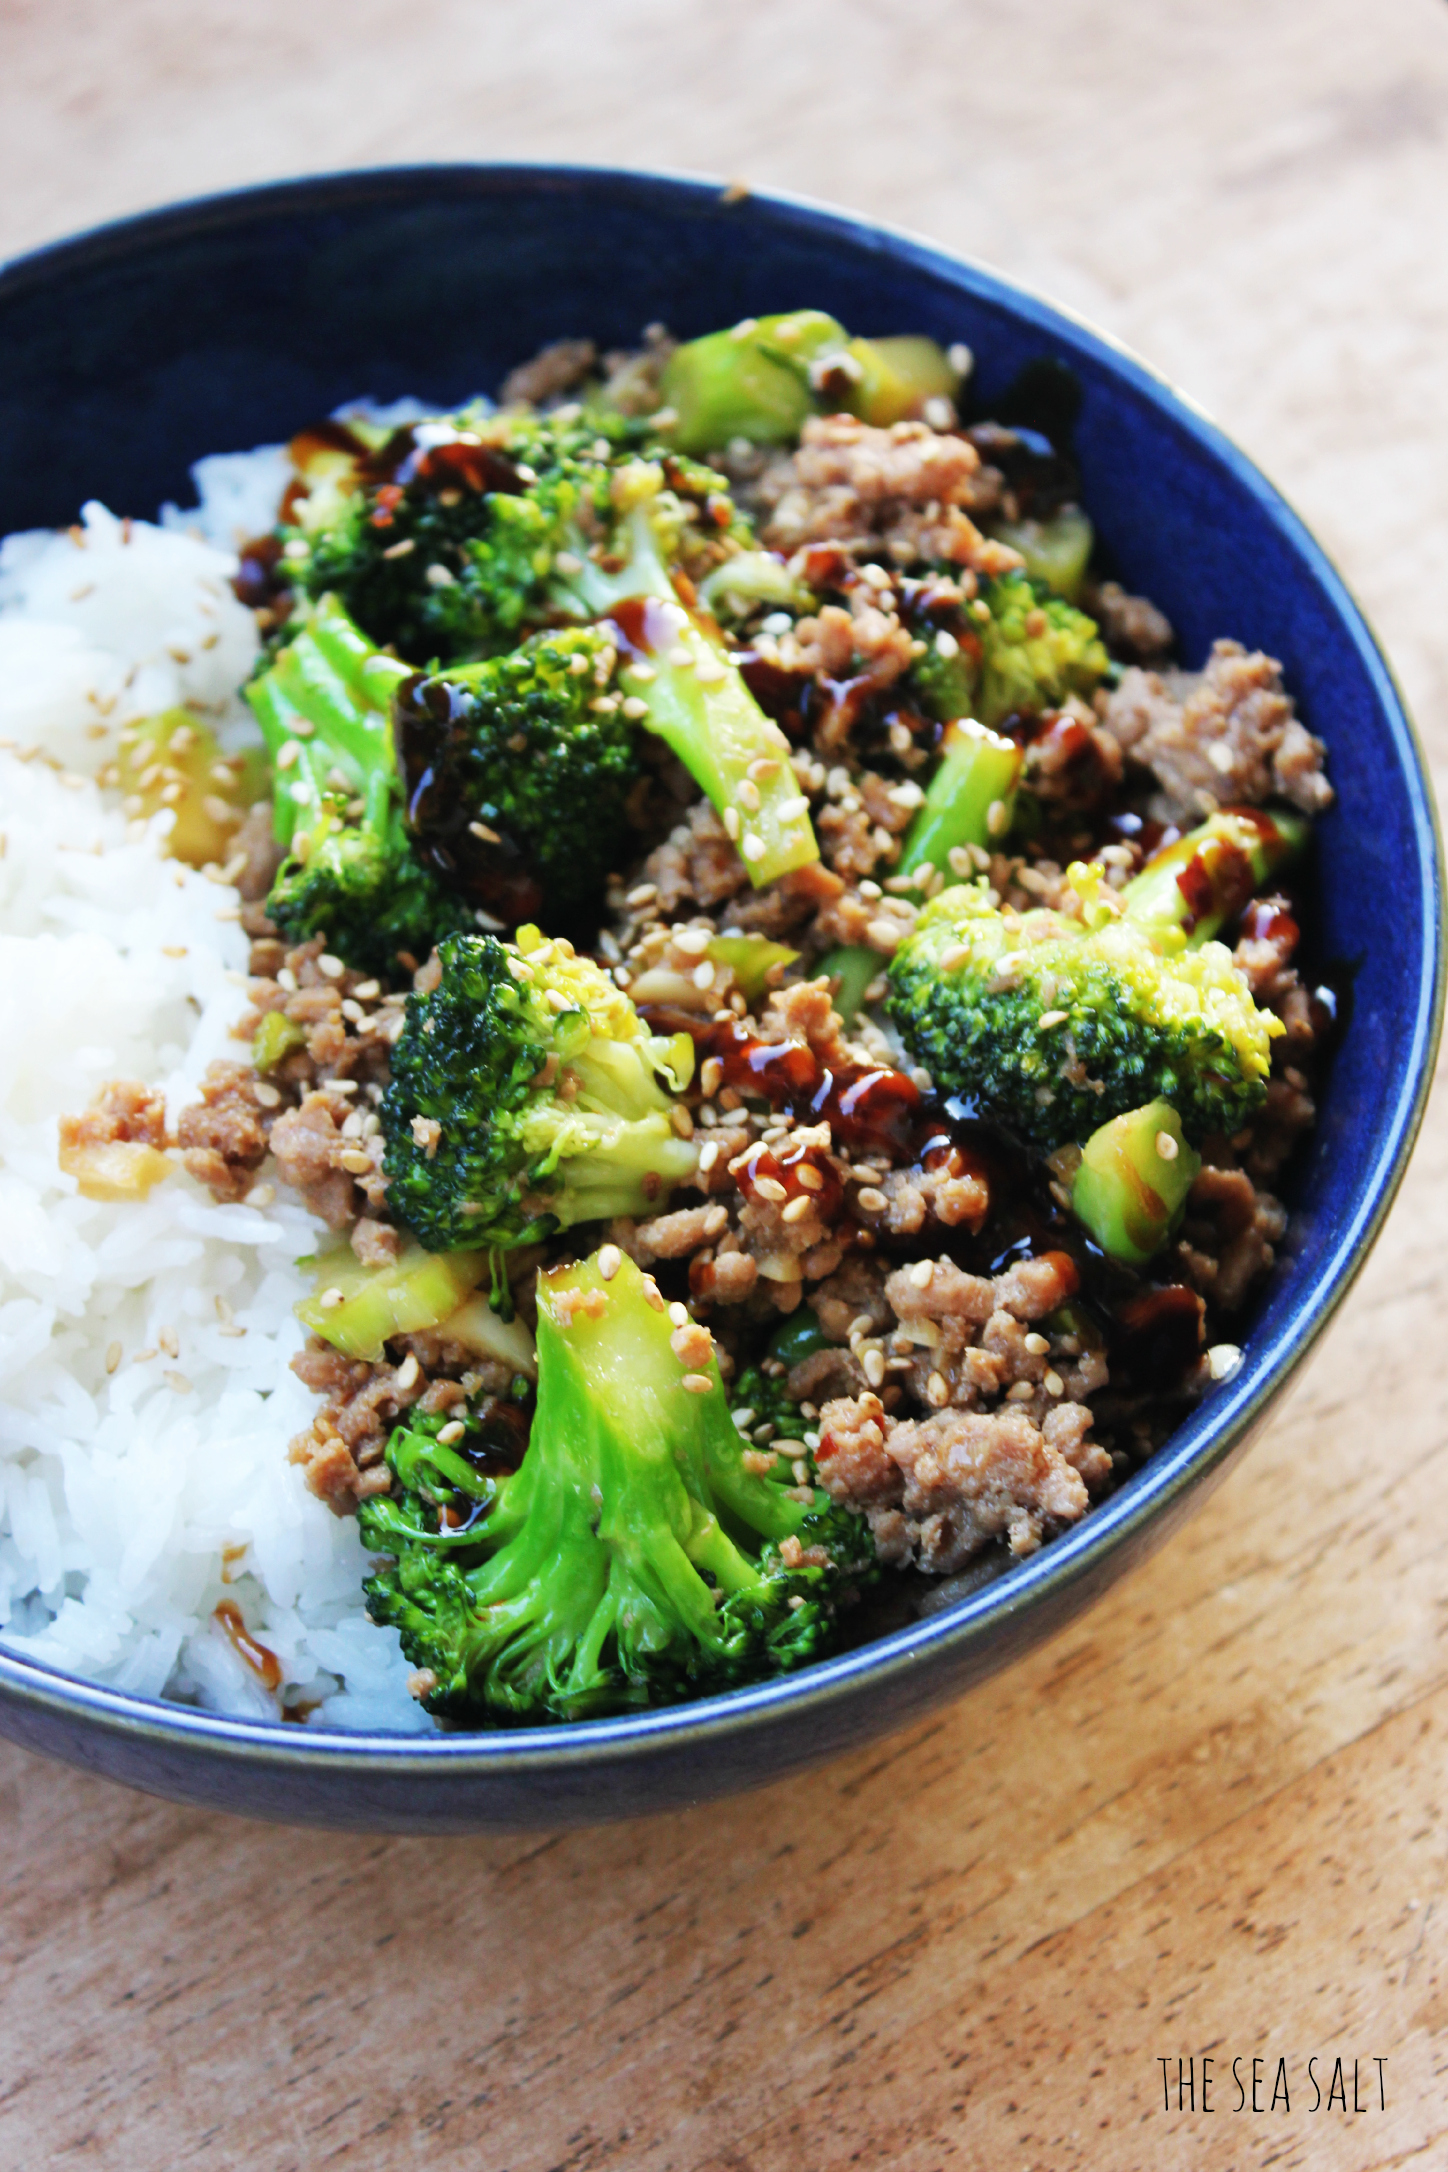 Spicy Stir-Fried Broccoli Stems Recipes — Dishmaps